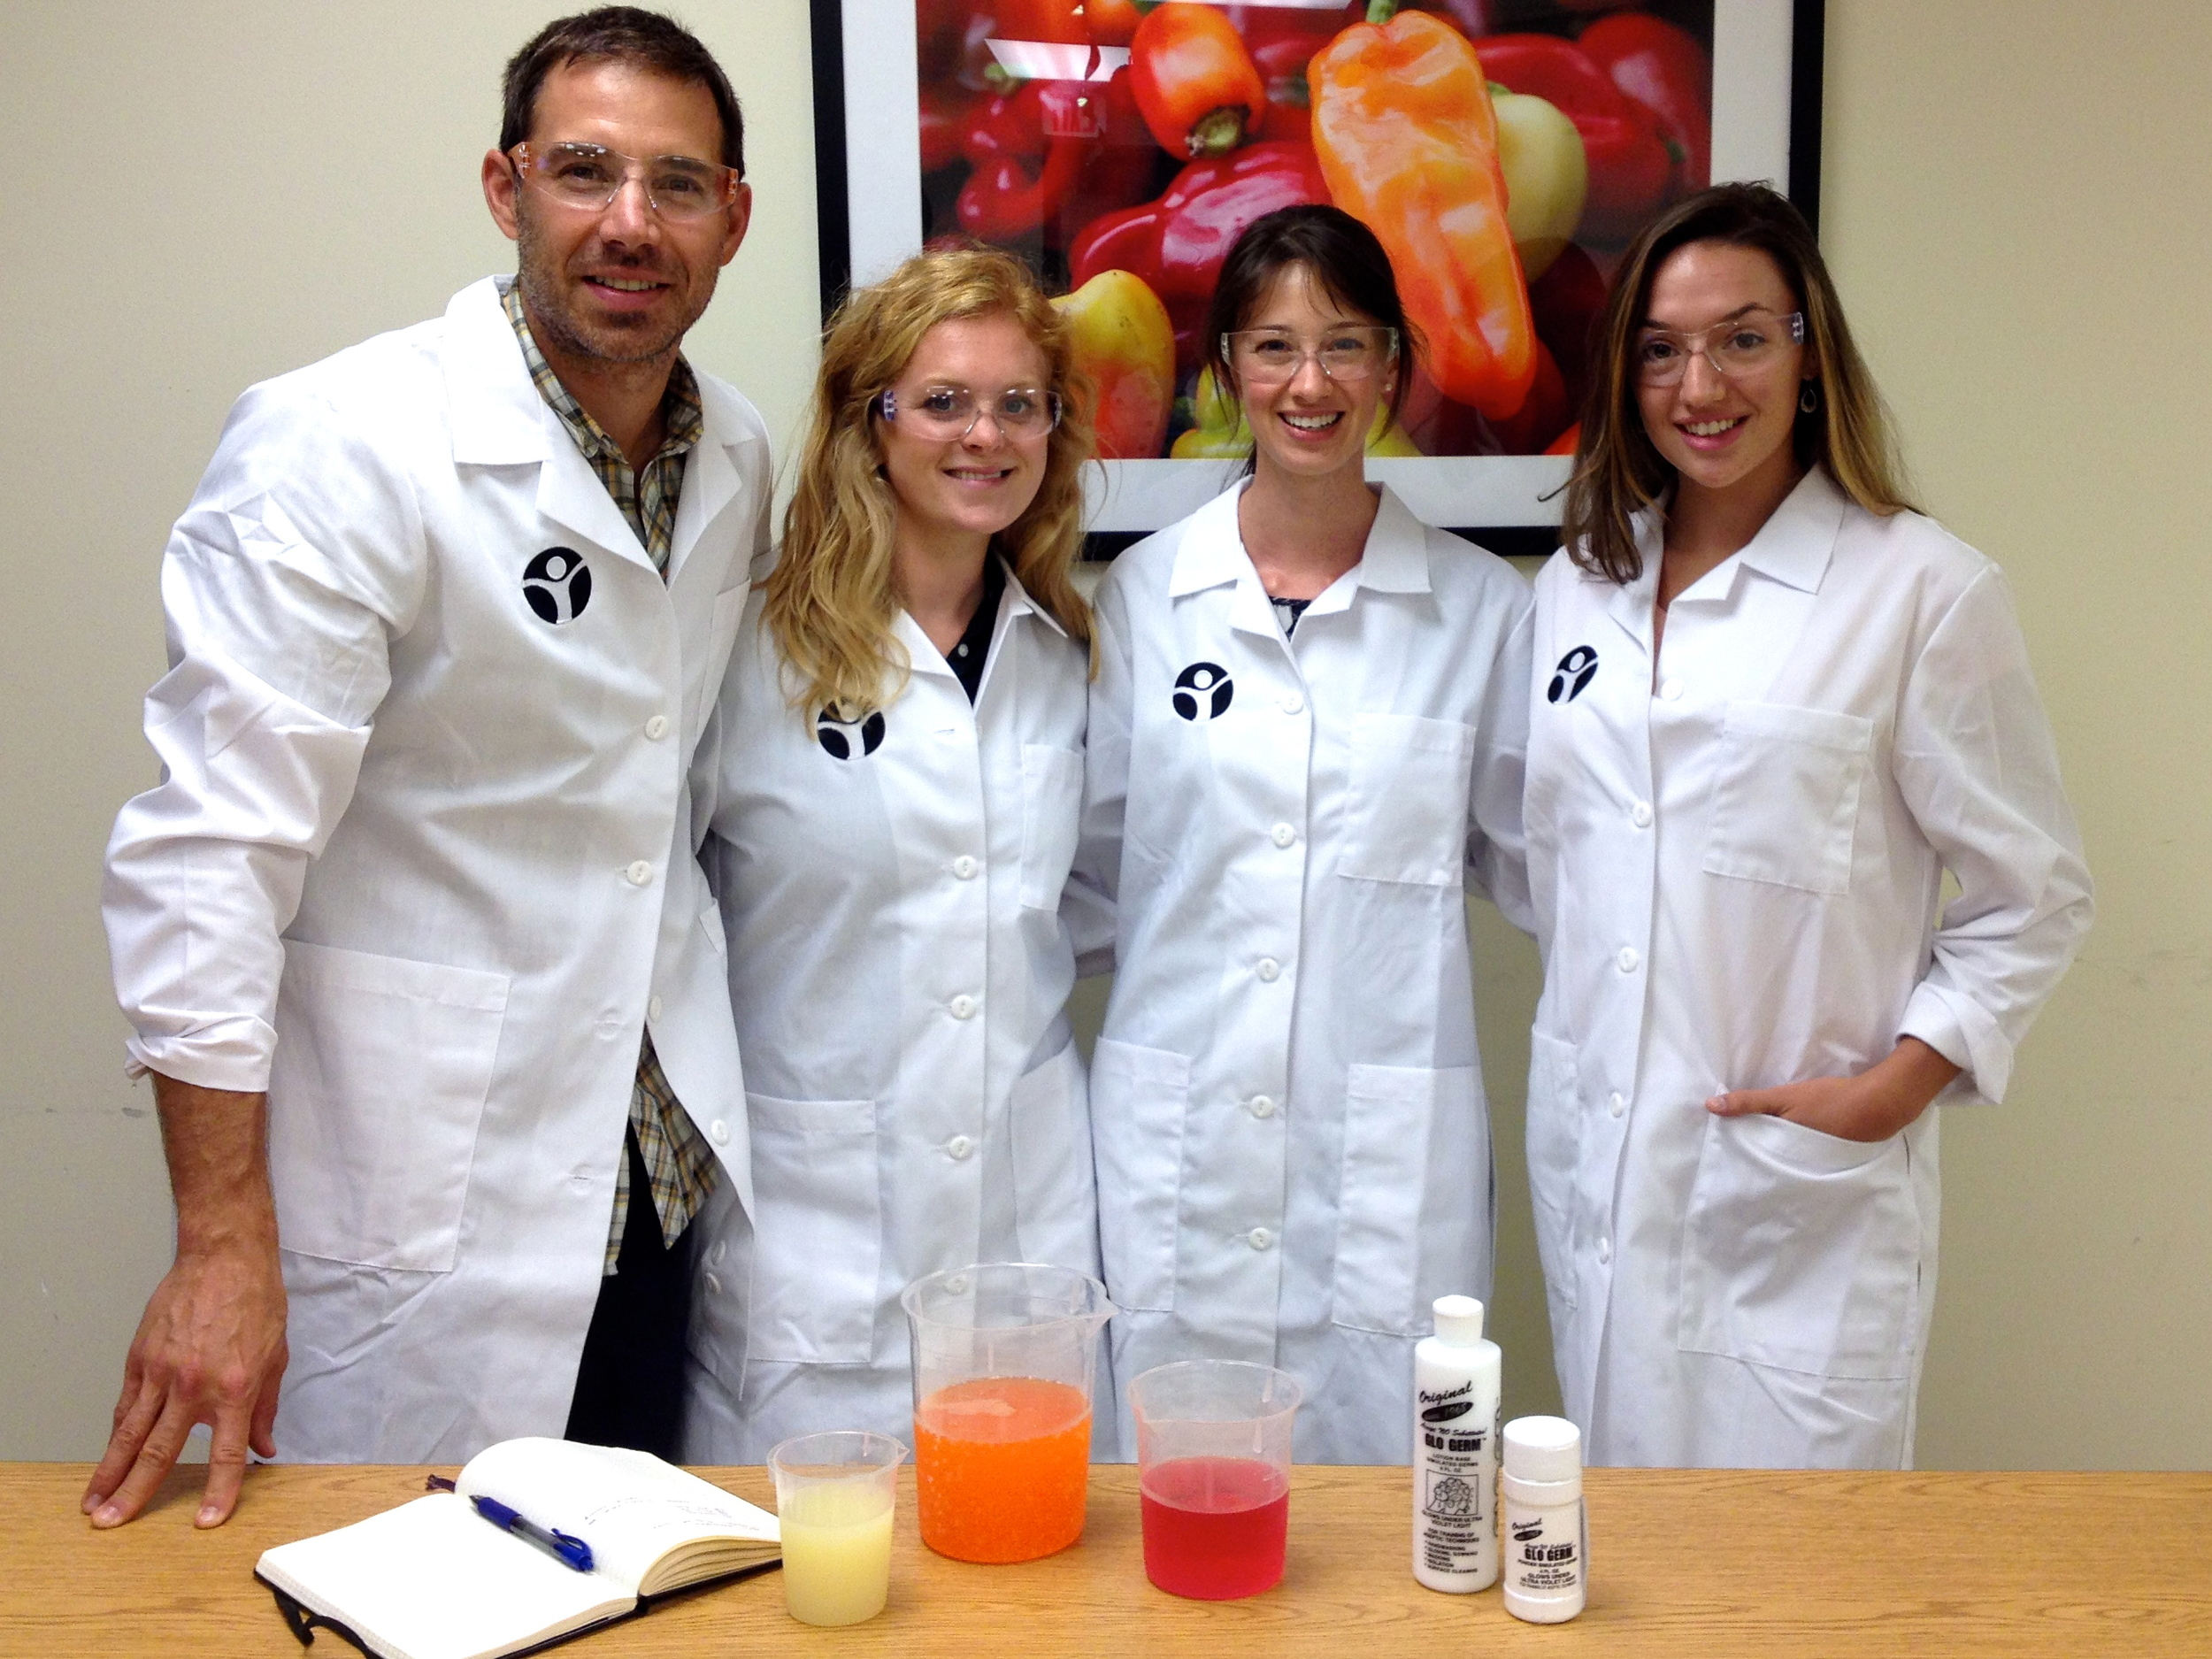 Food Science Camp staff: (Left to right) Ryan, Kate, Katie and Kayla